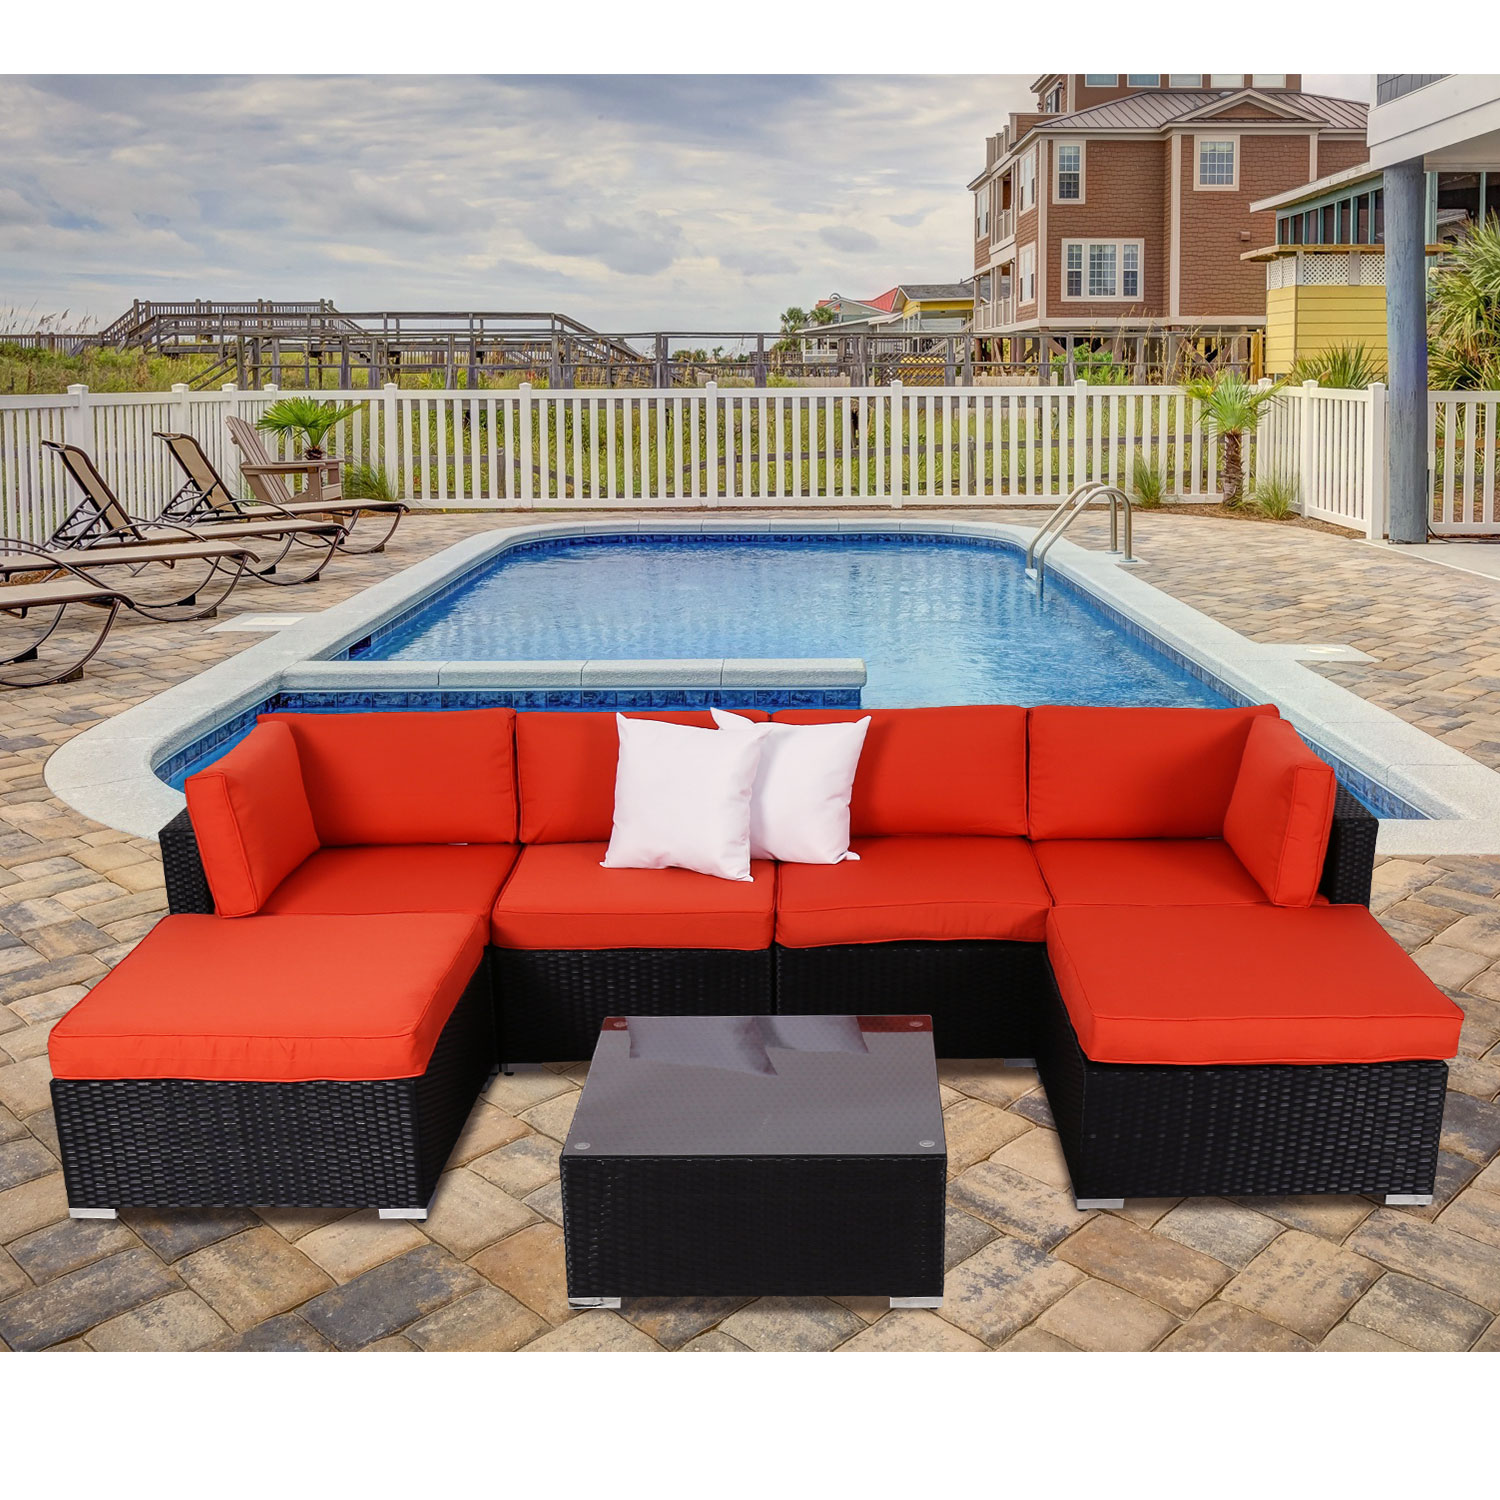 Kinbor 7pcs Outdoor Patio Furniture Sectional Pe Wicker Rattan Sofa Set 2 Ottoman Orange by Kinbor